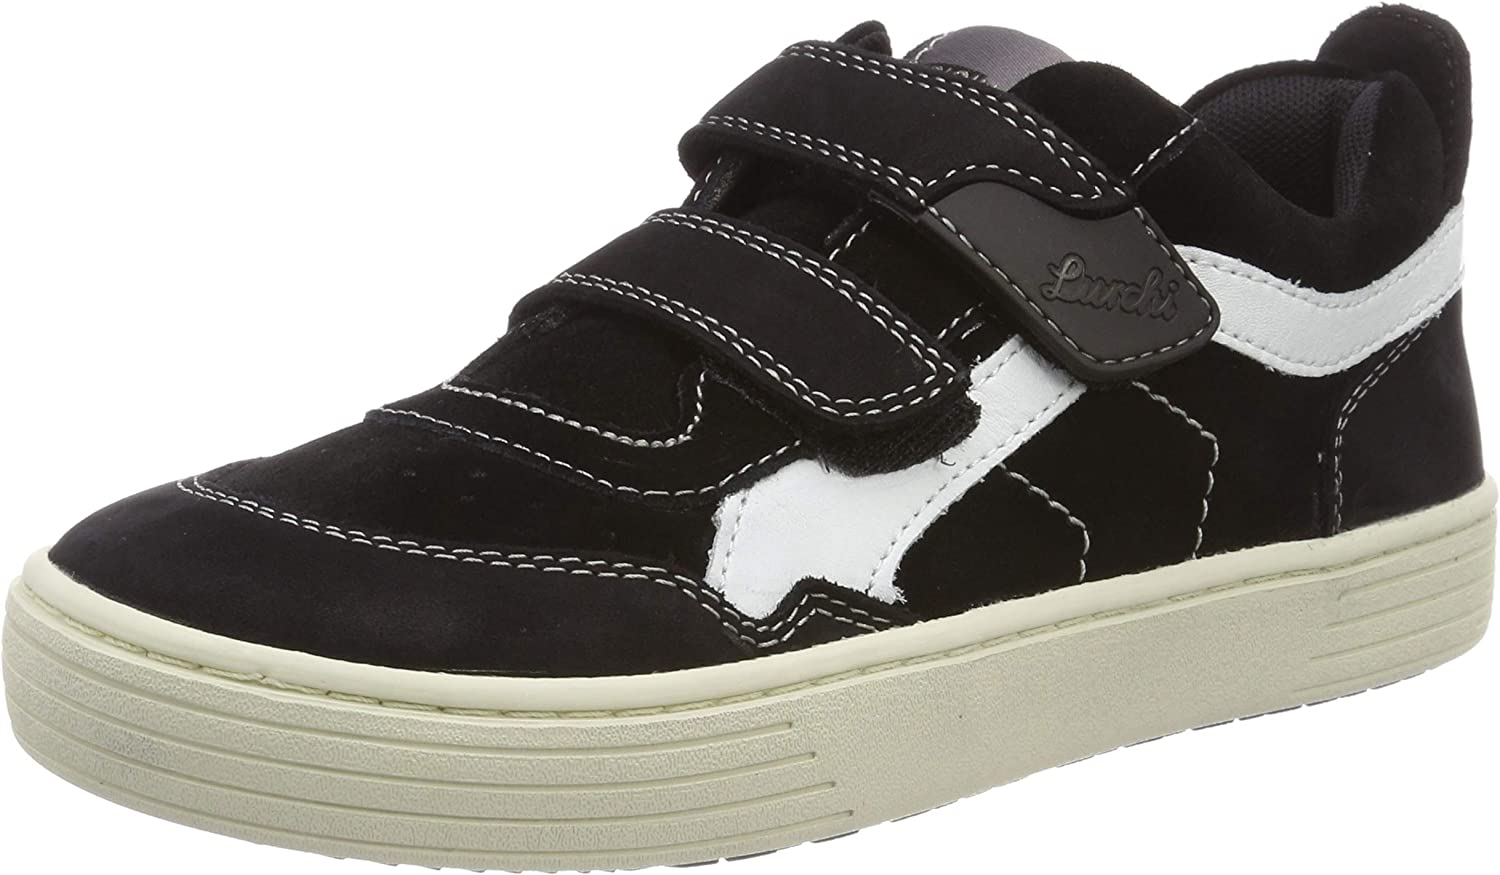 Lurchi Boys/' Hanno Low-Top Sneakers